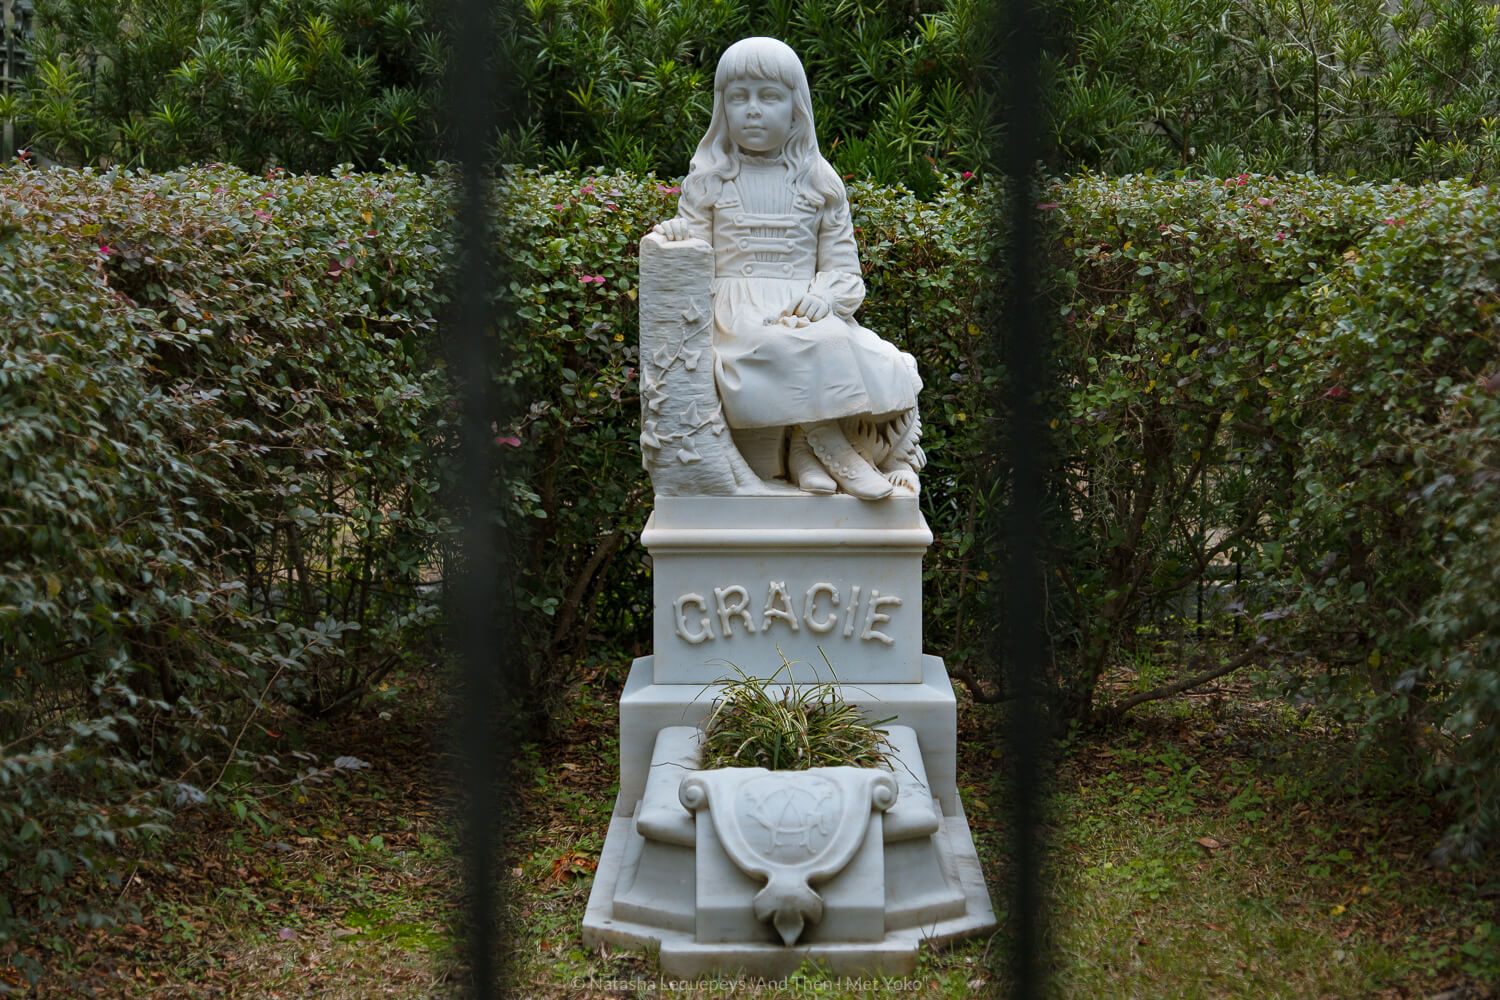 """Little Gracie grave site at Bonaventure Cemetery in Savannah, Georgia. Travel photography and guide by © Natasha Lequepeys for """"And Then I Met Yoko"""". #bonaventurecemetery #savannah #travelguide #travelblog #travelphotography #fujifilm"""